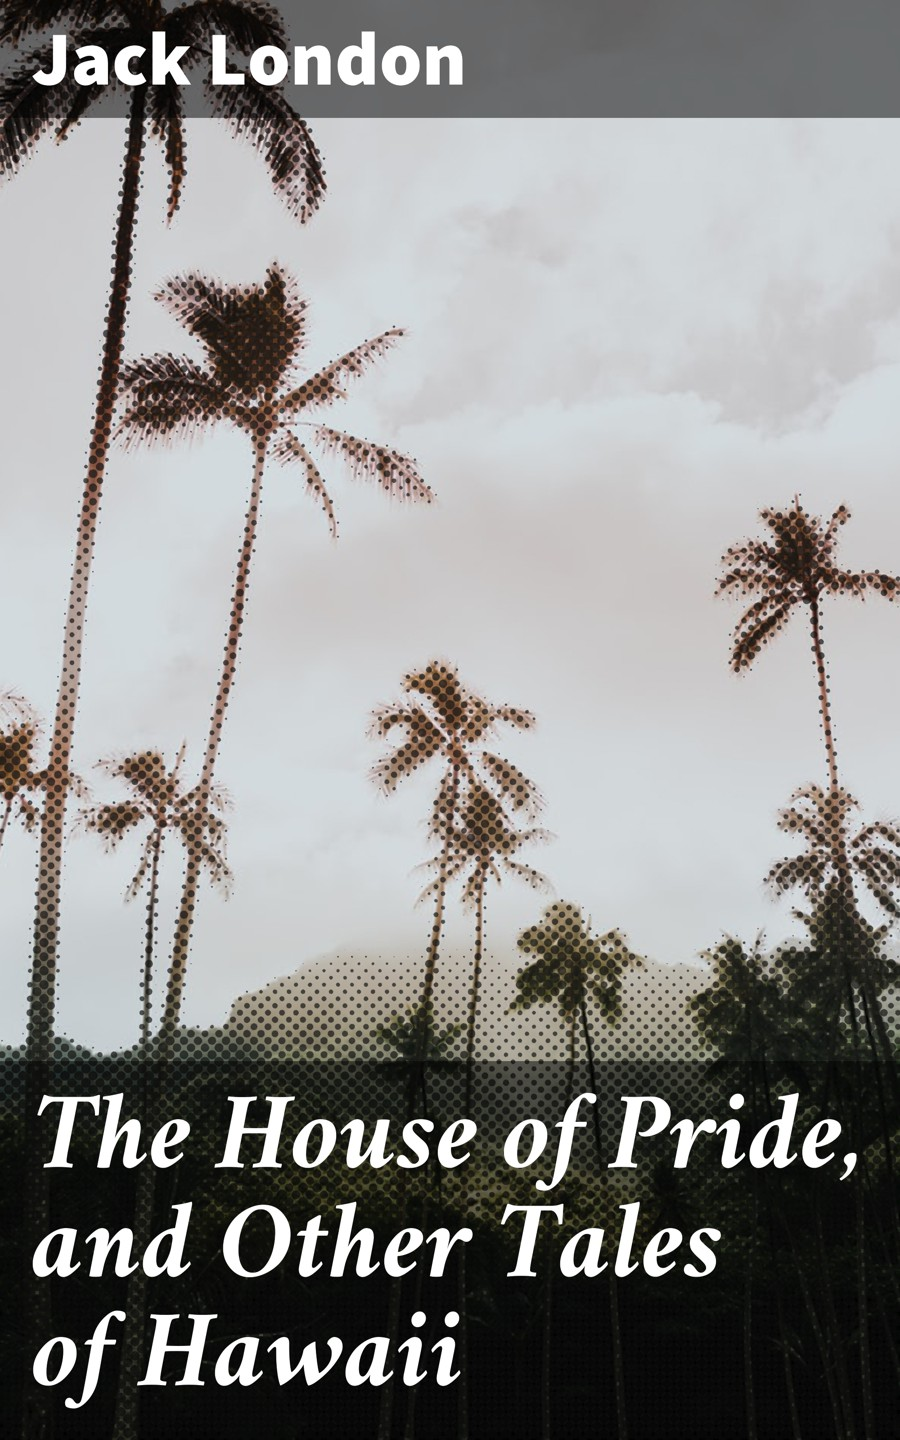 Jack London The House of Pride, and Other Tales of Hawaii pride of bloodlines